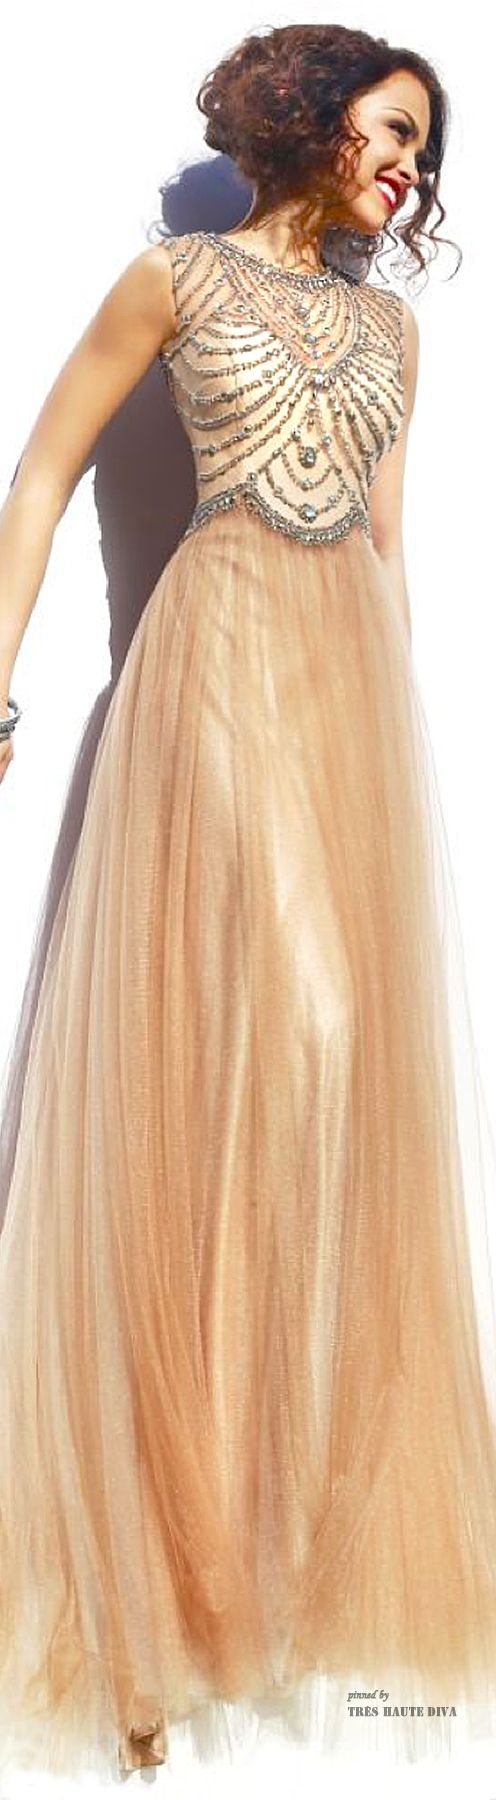 Stunning prom pinterest prom board and uk prom dresses